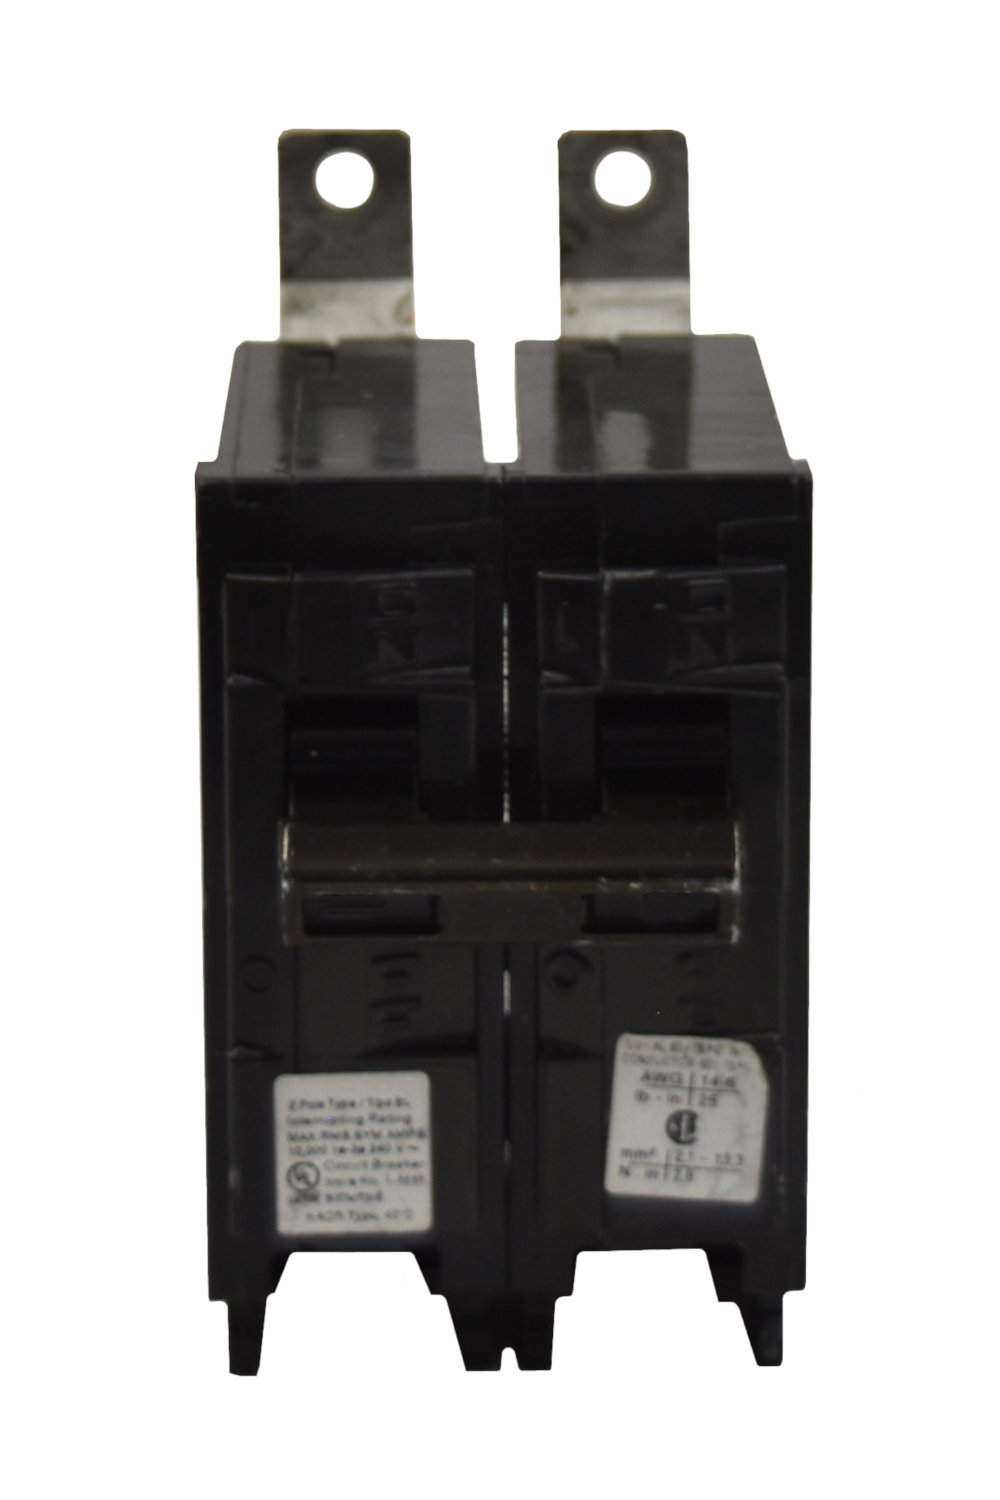 Siemens B280 Circuit Breakers